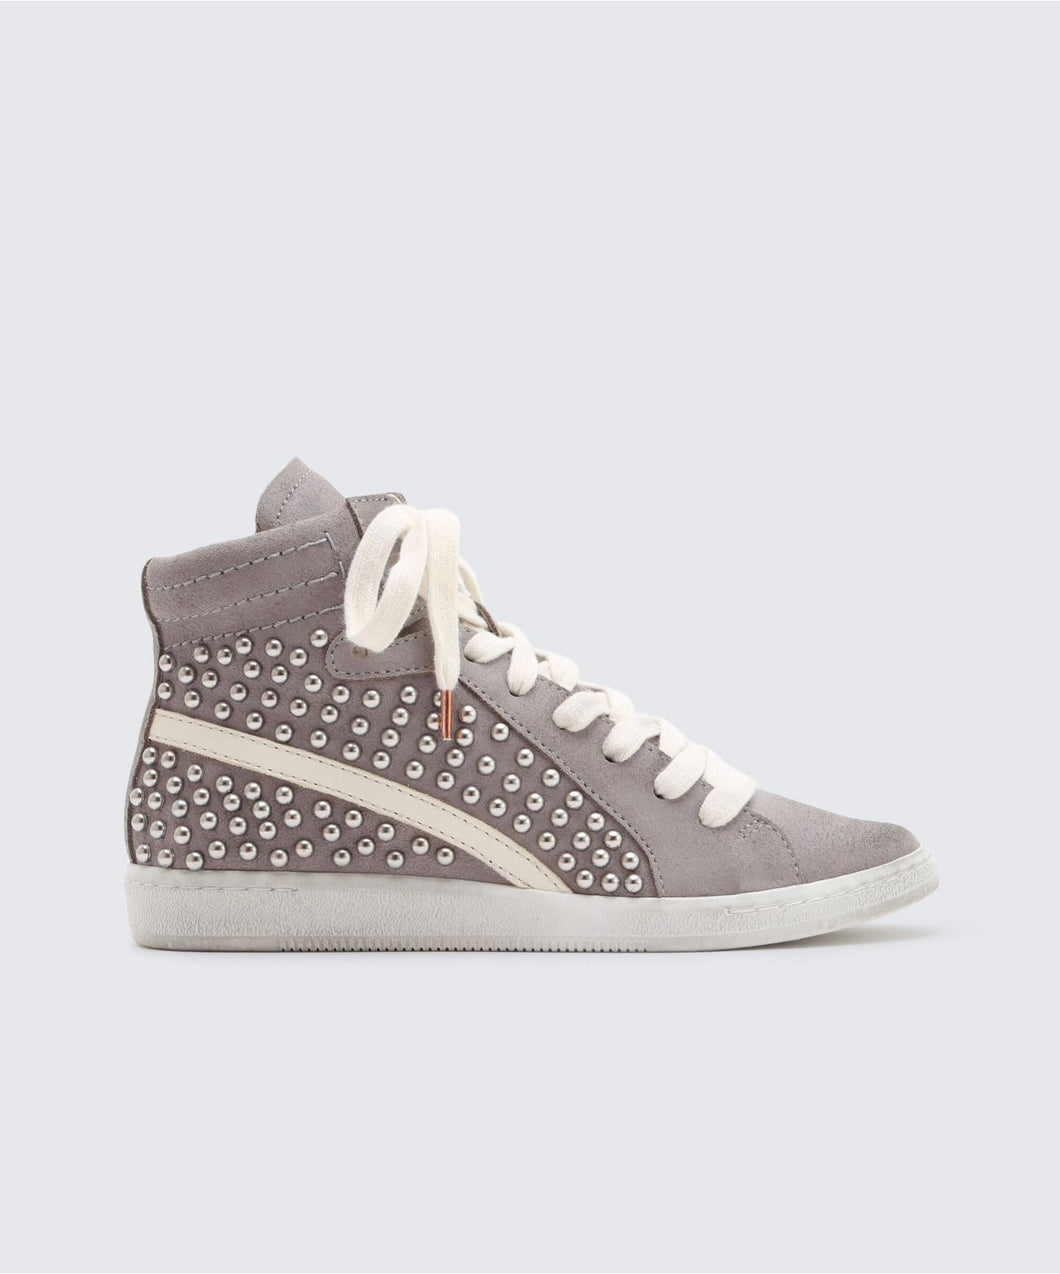 NATTY STUDDED SNEAKERS SMOKE -   Dolce Vita